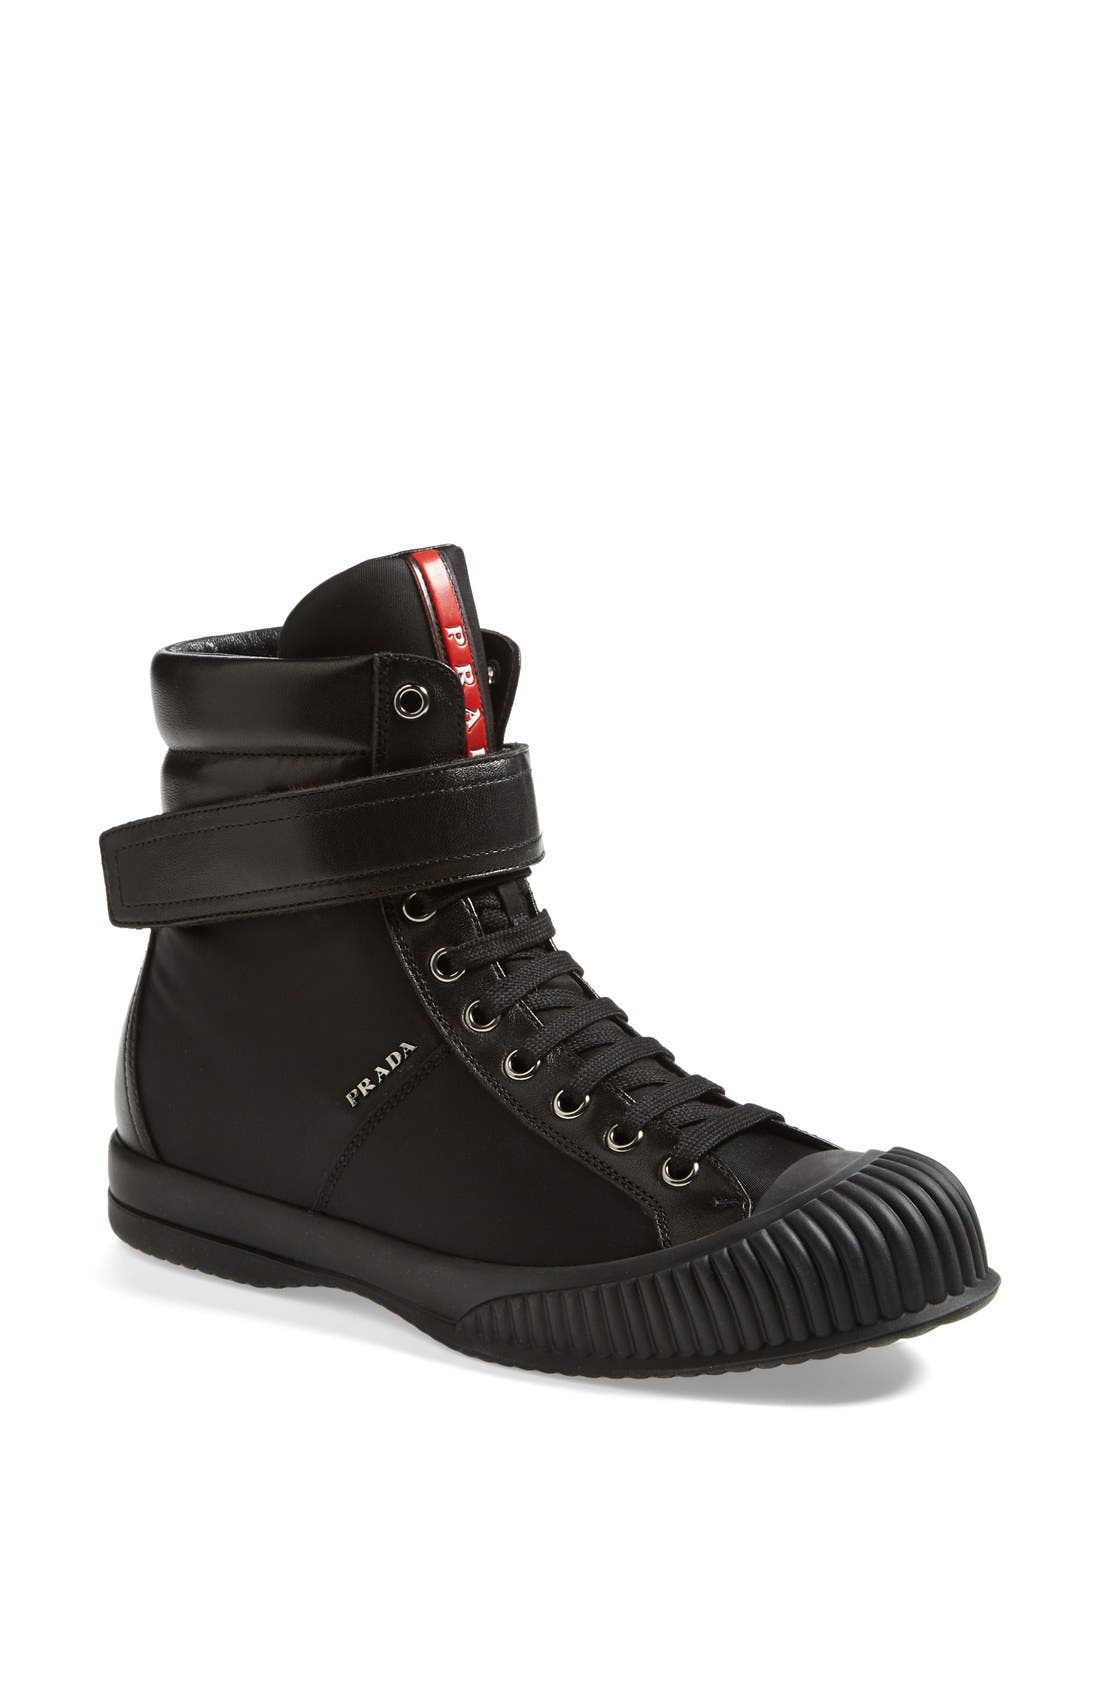 Alternate Image 1 Selected - Prada Sport High Top Sneaker (Women)